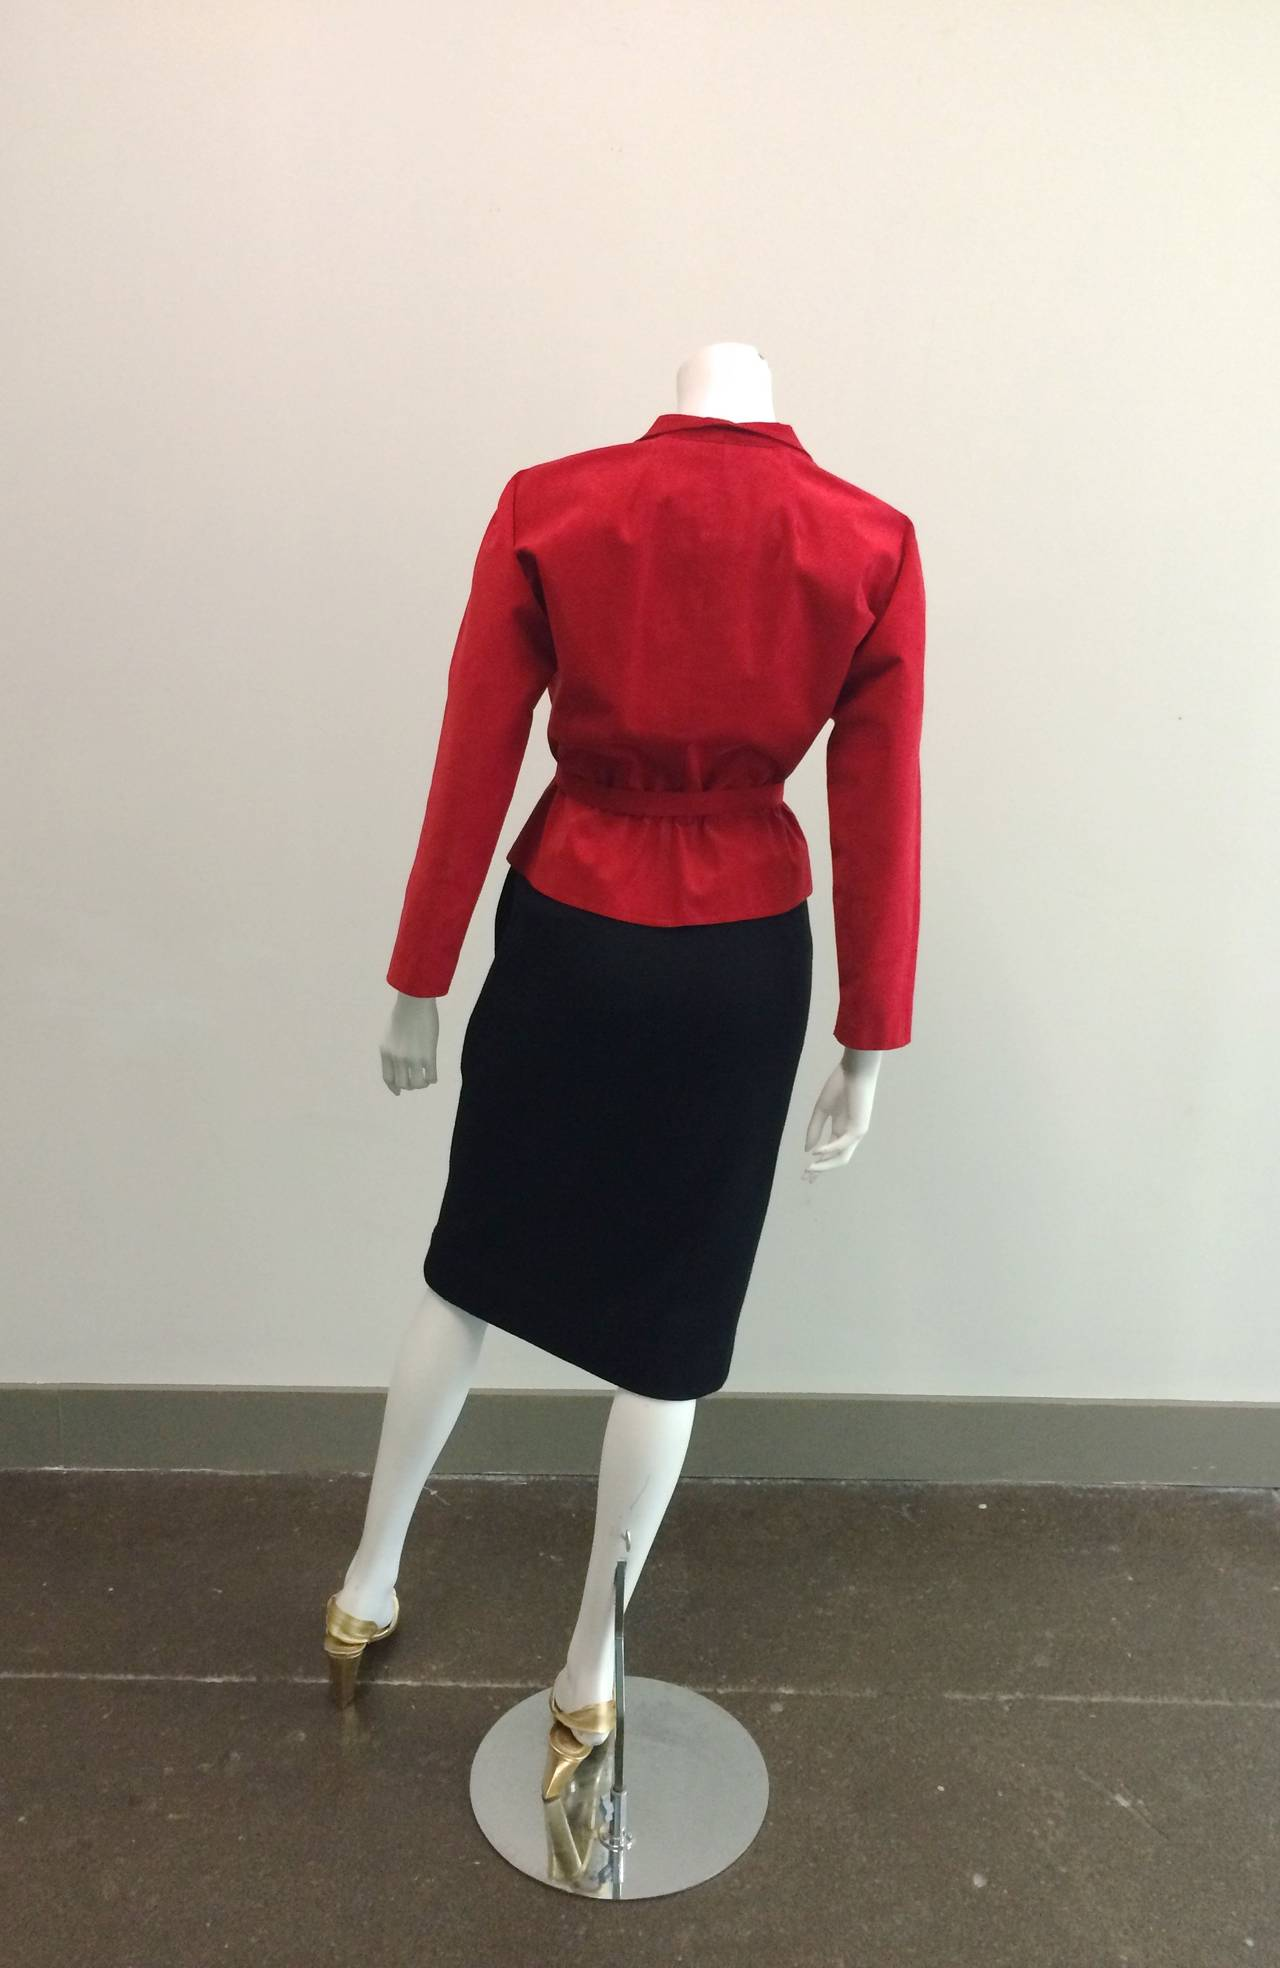 Halston 1970s Ultra Suede Red Jacket with Black Wool Skirt Size 4. 5